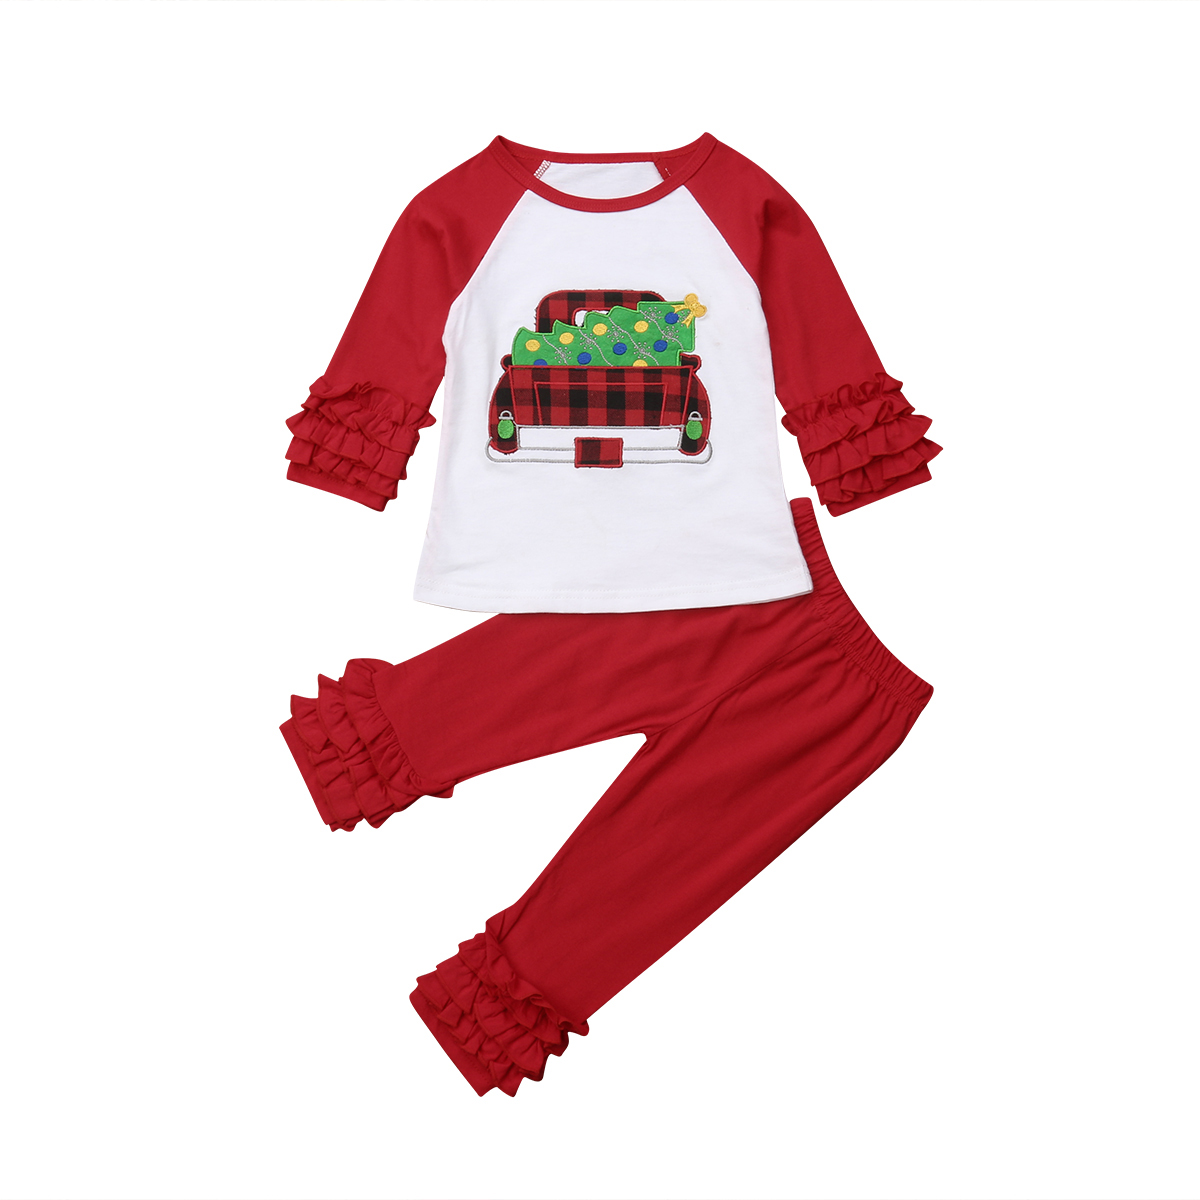 Christmas Kids Baby Girls Clothing Tops Cotton T-shirt Long Sleeve Ruffle Pants Xmax Cotton 2PCS Outfit Clothes Set Girl 0-6T цена